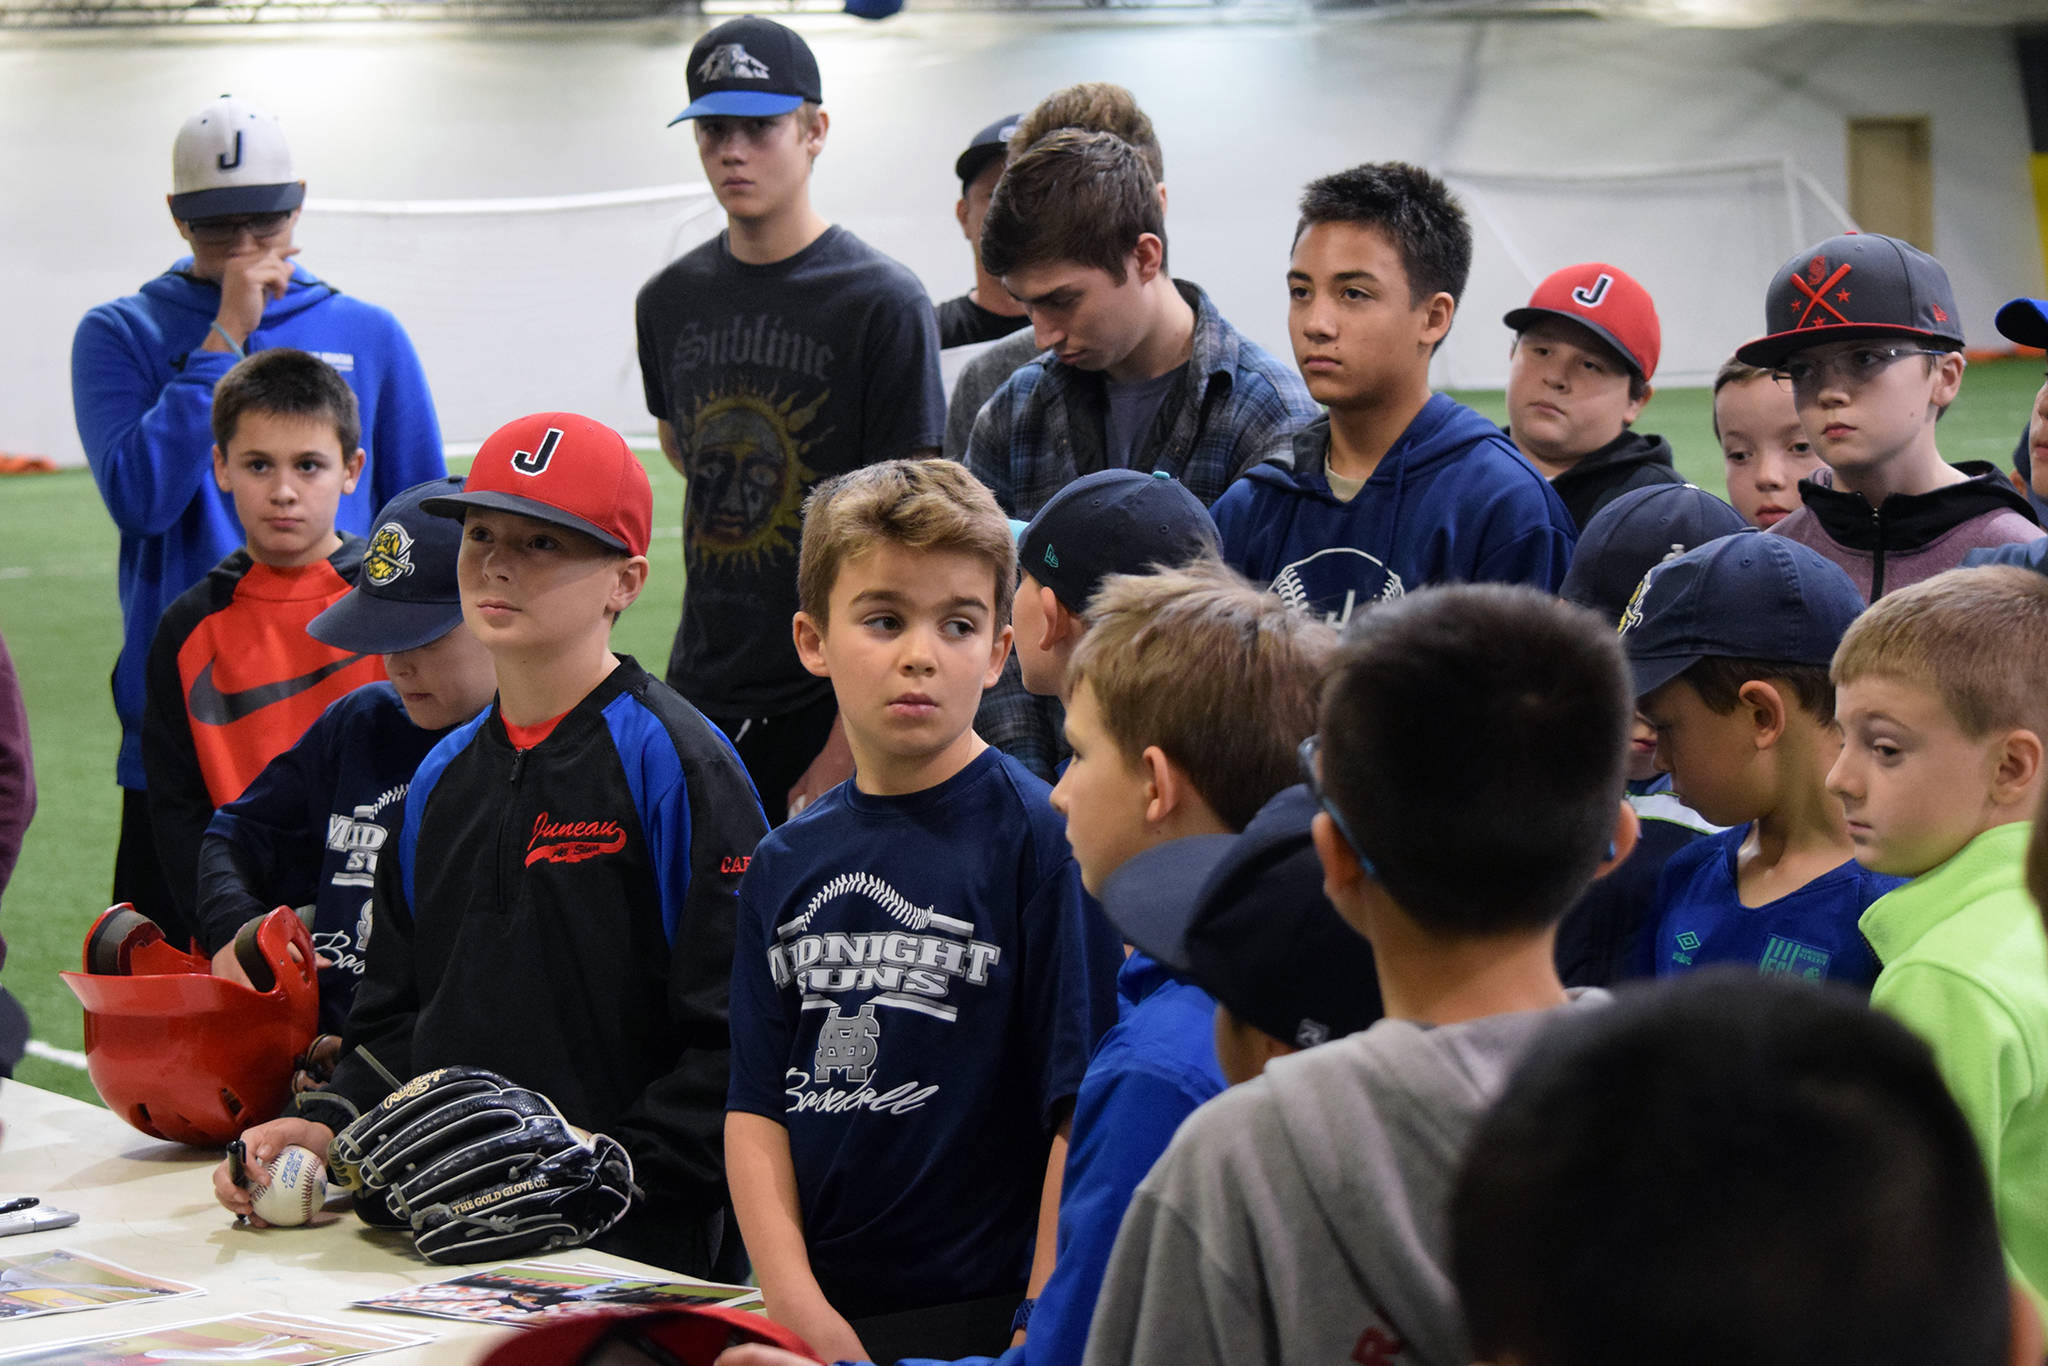 Midnight Suns Baseball Club baseball players listen to Cleveland Indians pitcher Zach Plesac at the Wells Fargo Dimond Park Field House on Thursday, Oct. 17, 2019. Approximately 70 players, parents and coaches gathered to hear Plesac's story. (Nolin Ainsworth | Juneau Empire)